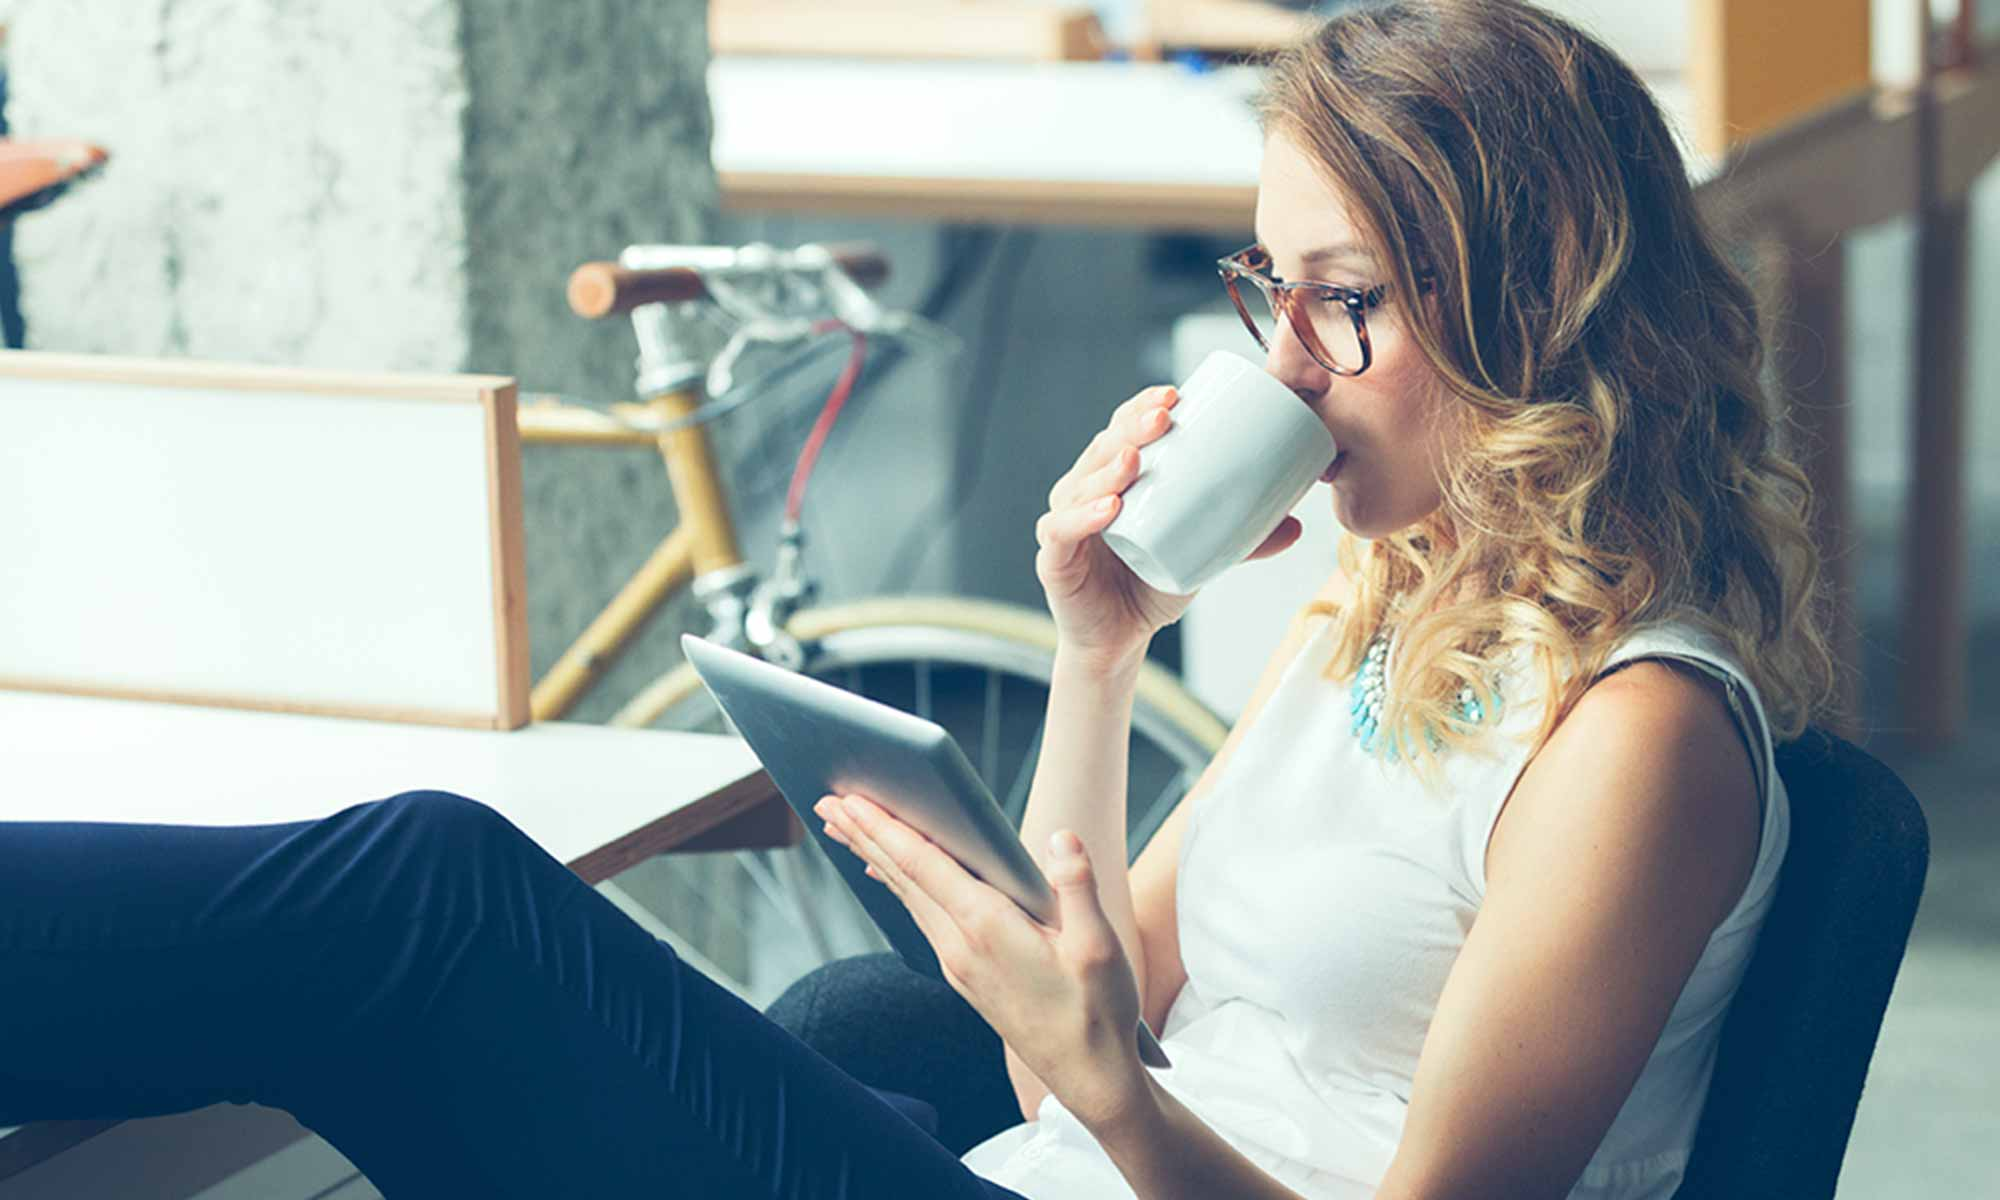 woman reading on tablet device sipping from mug